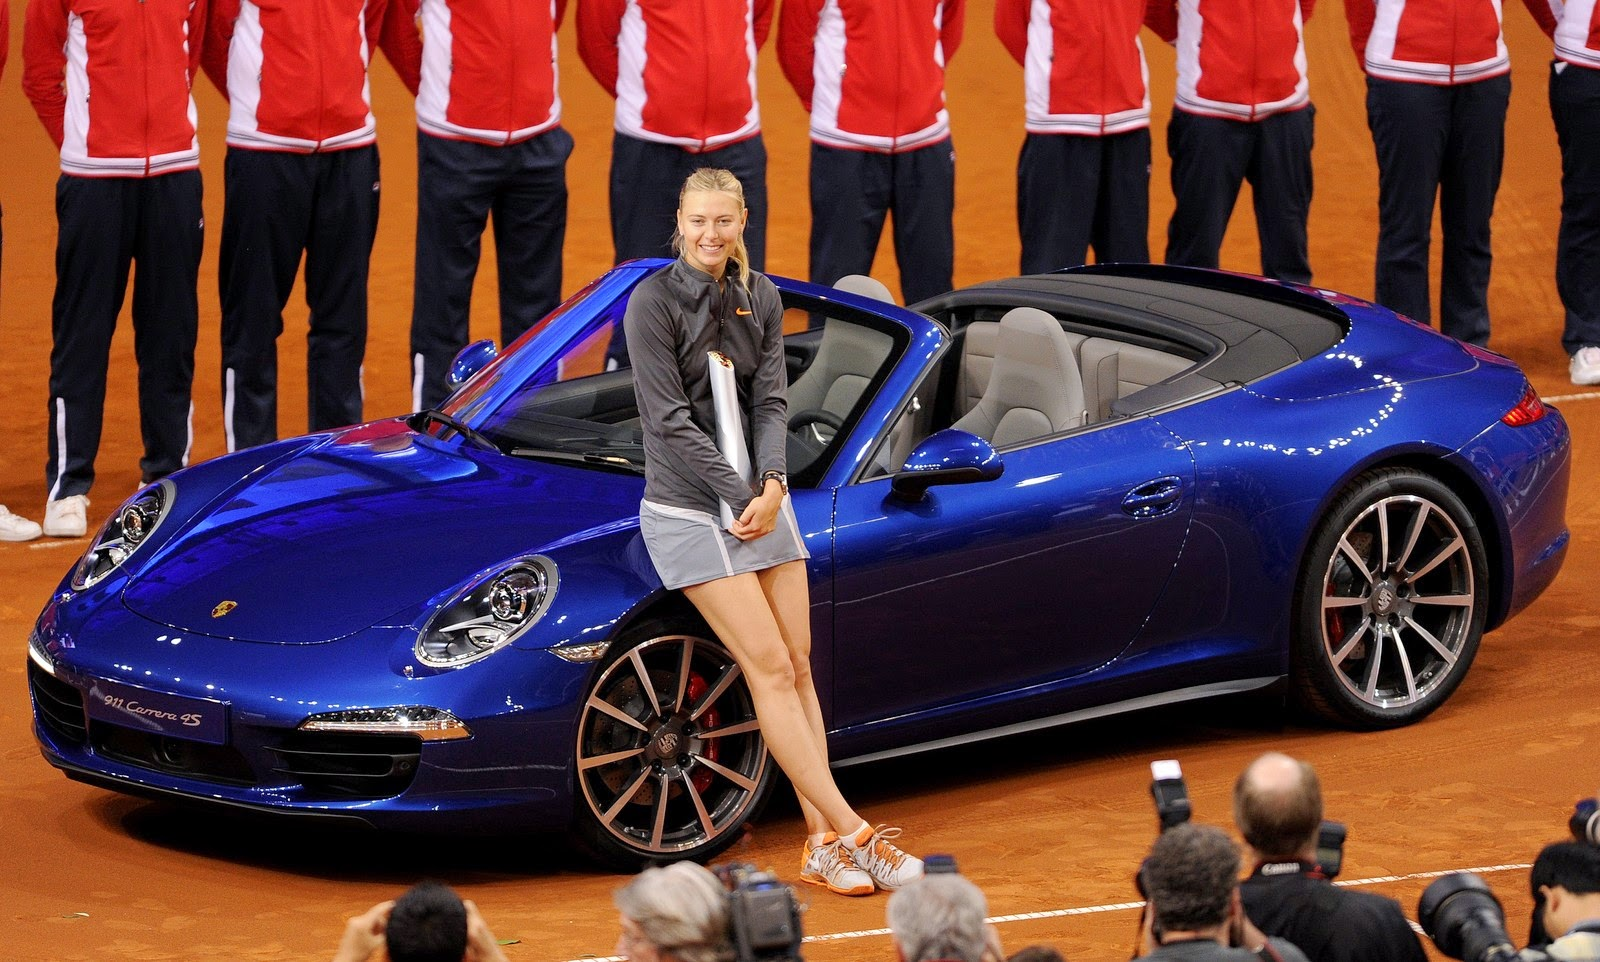 Sharapova imparable en Stuttgart